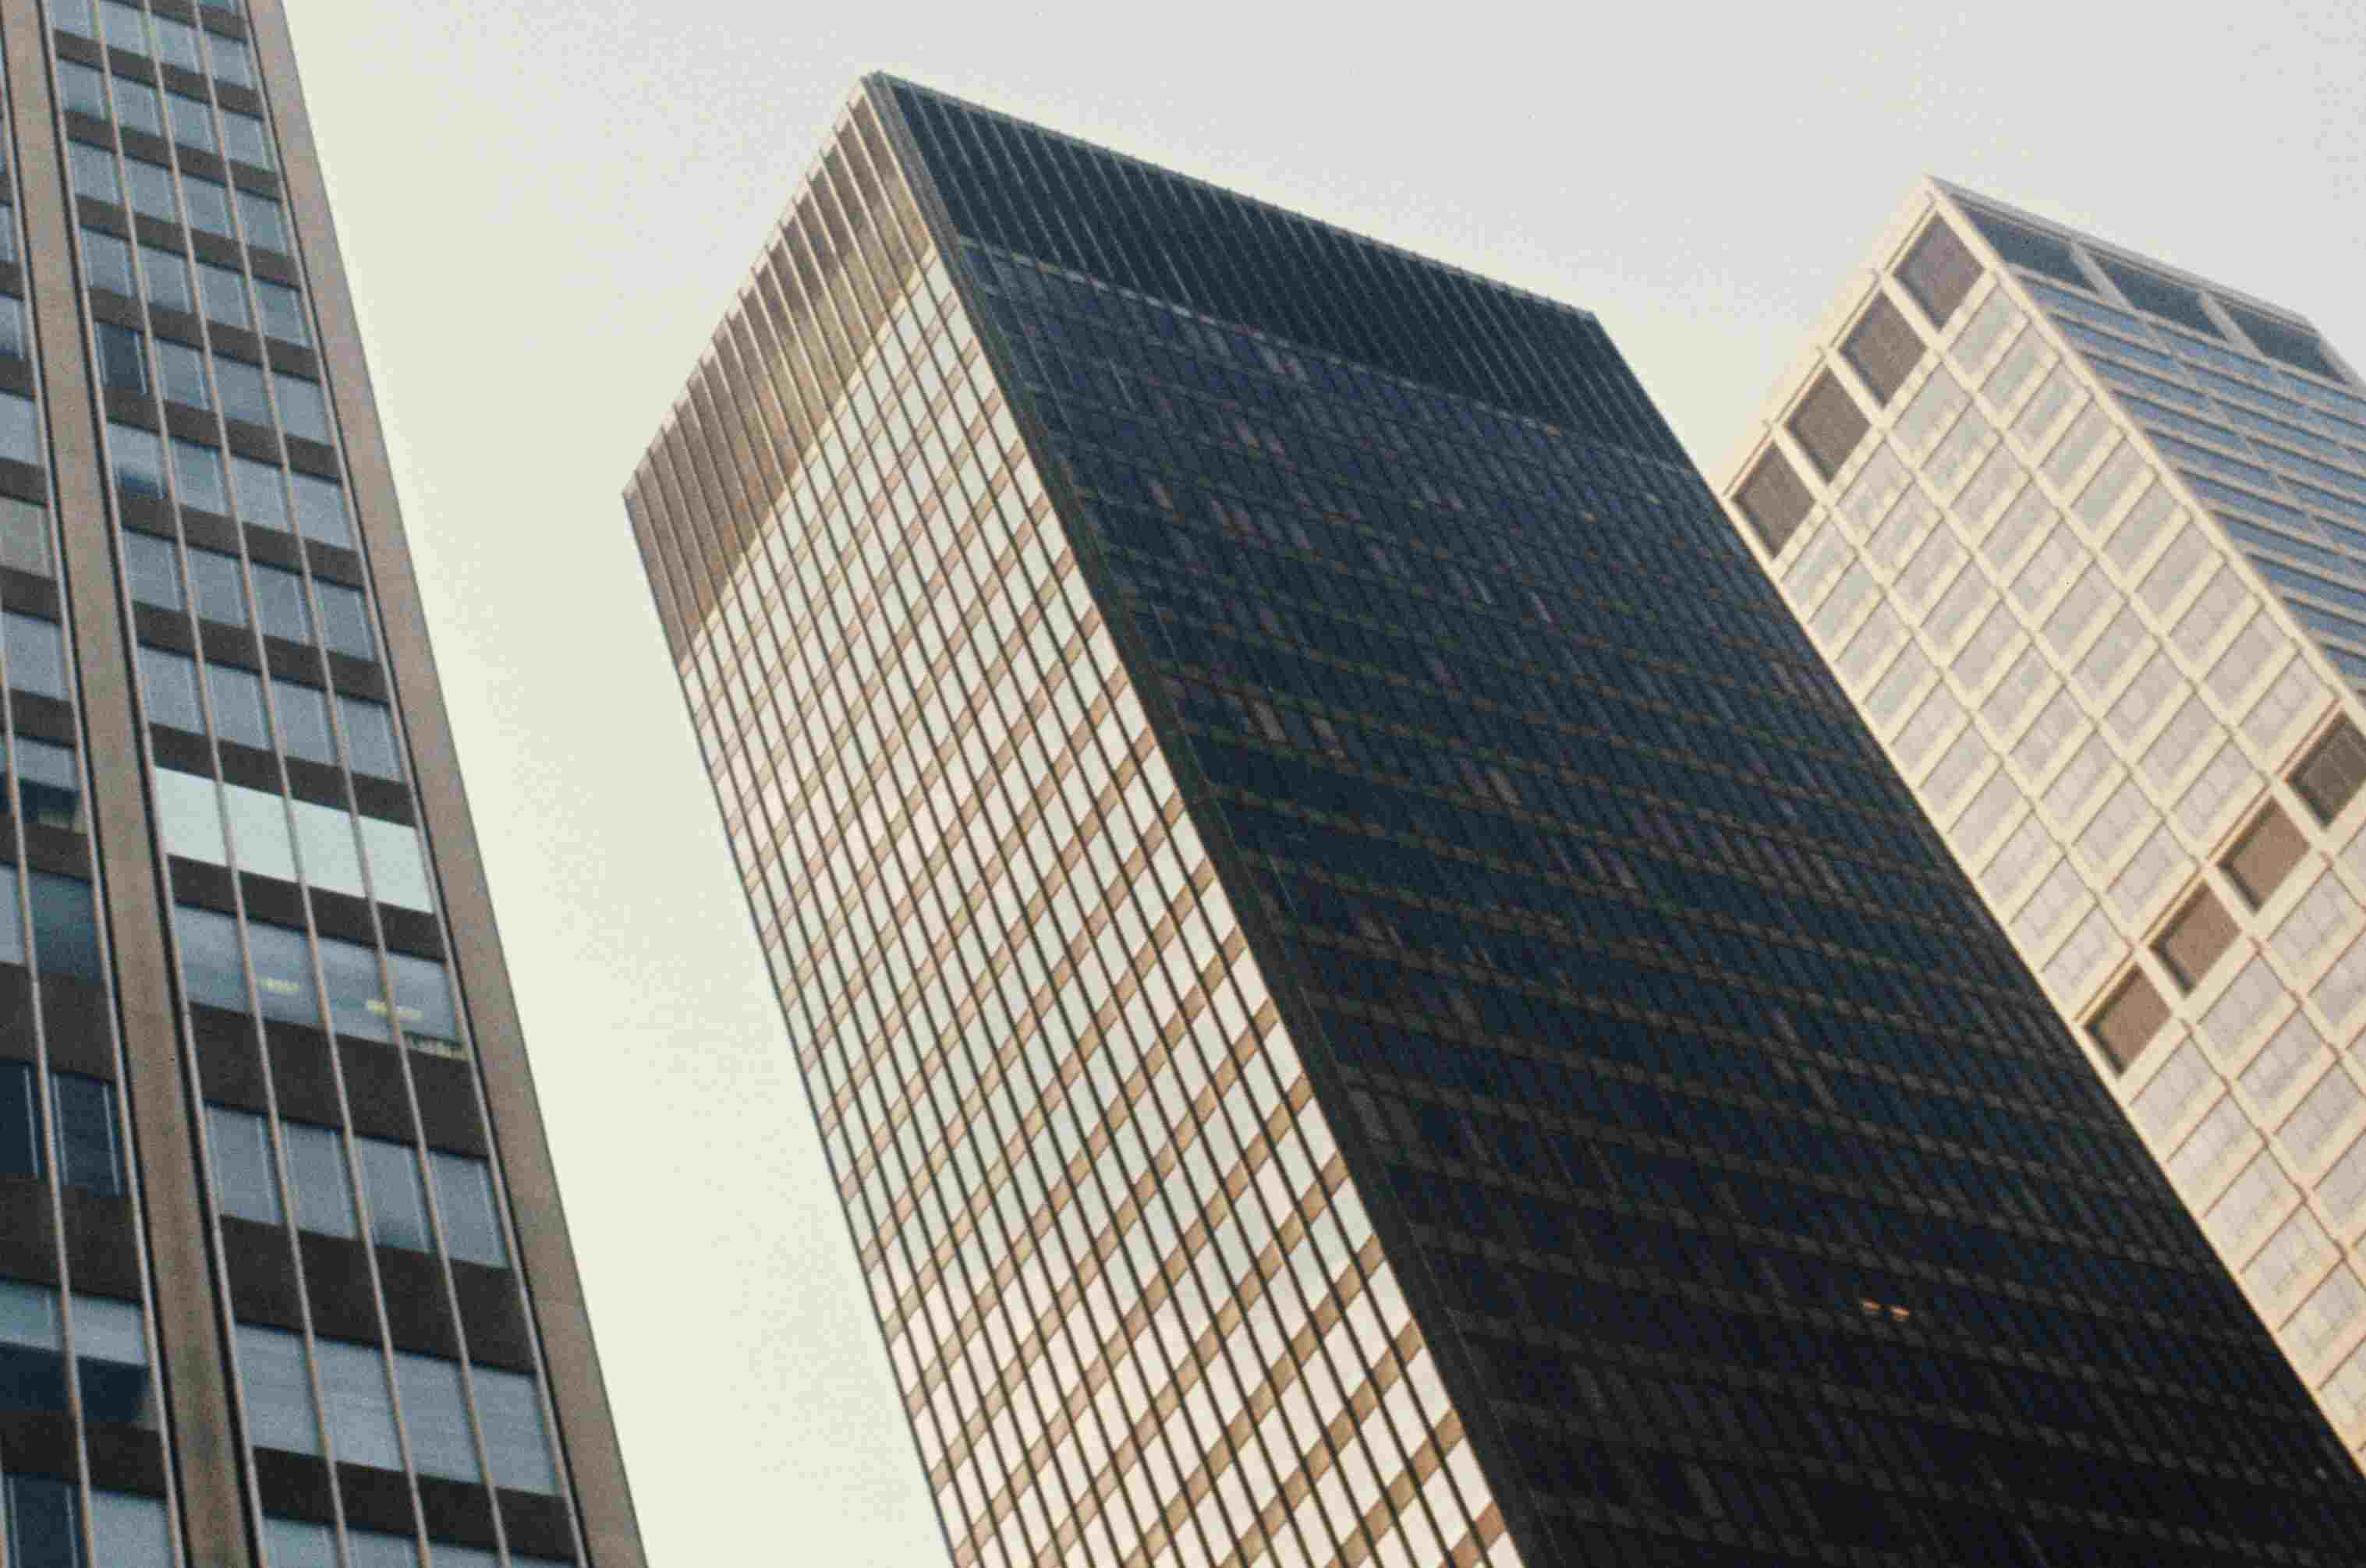 looking up at three skyscrapers, rectangular solids